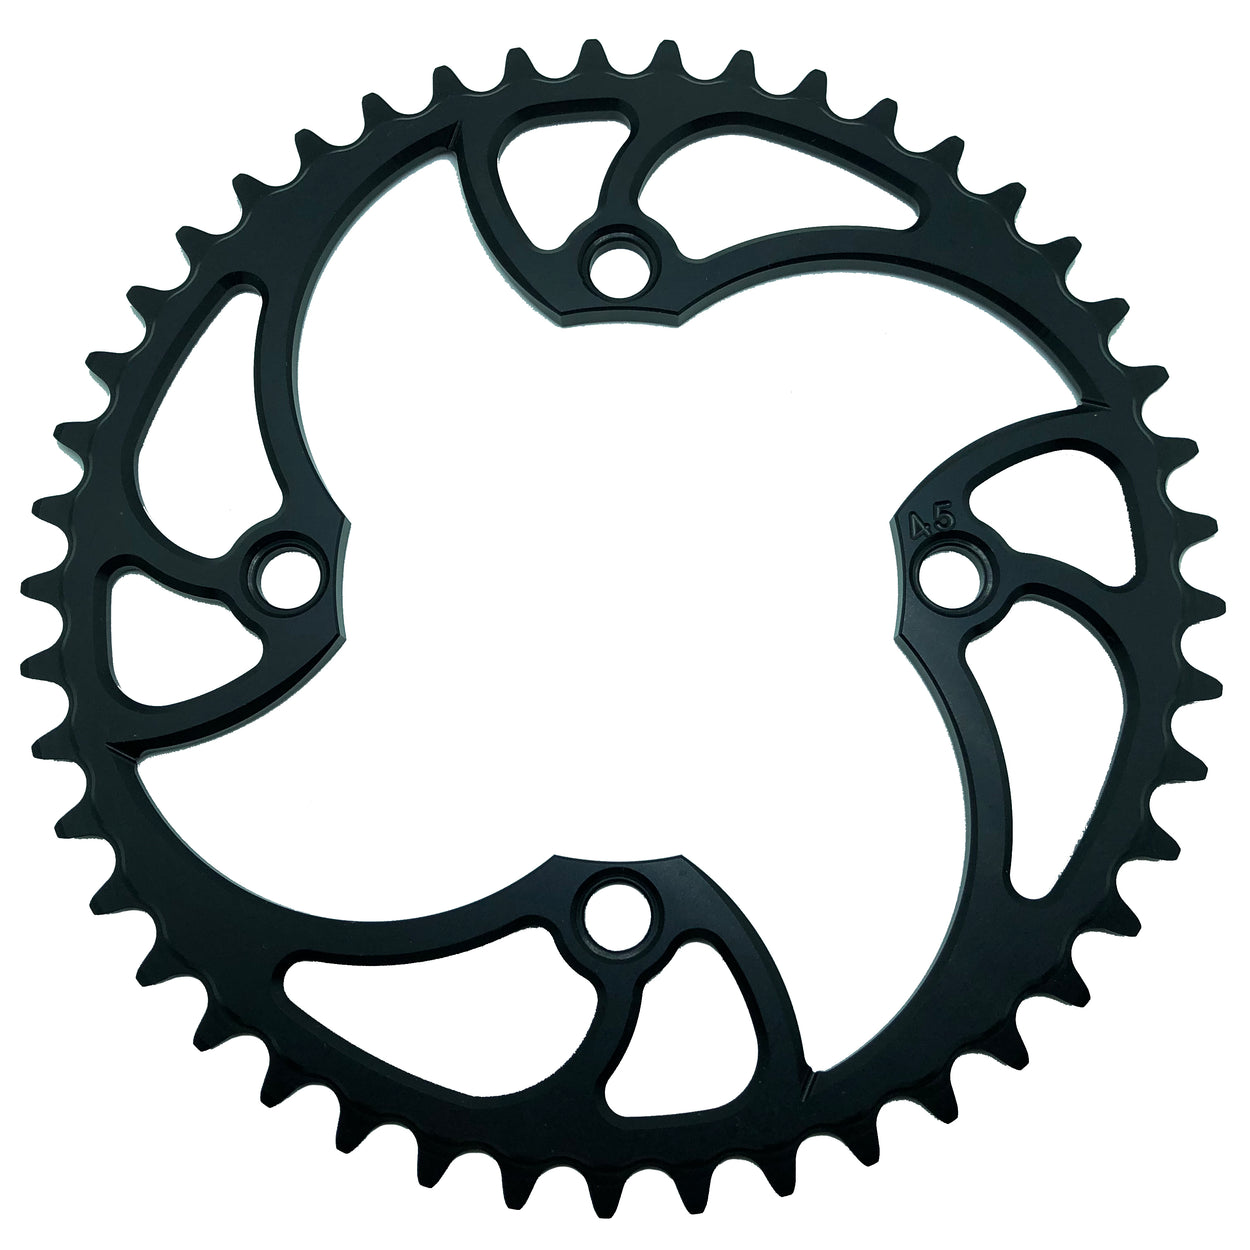 Sprockets/Cogs